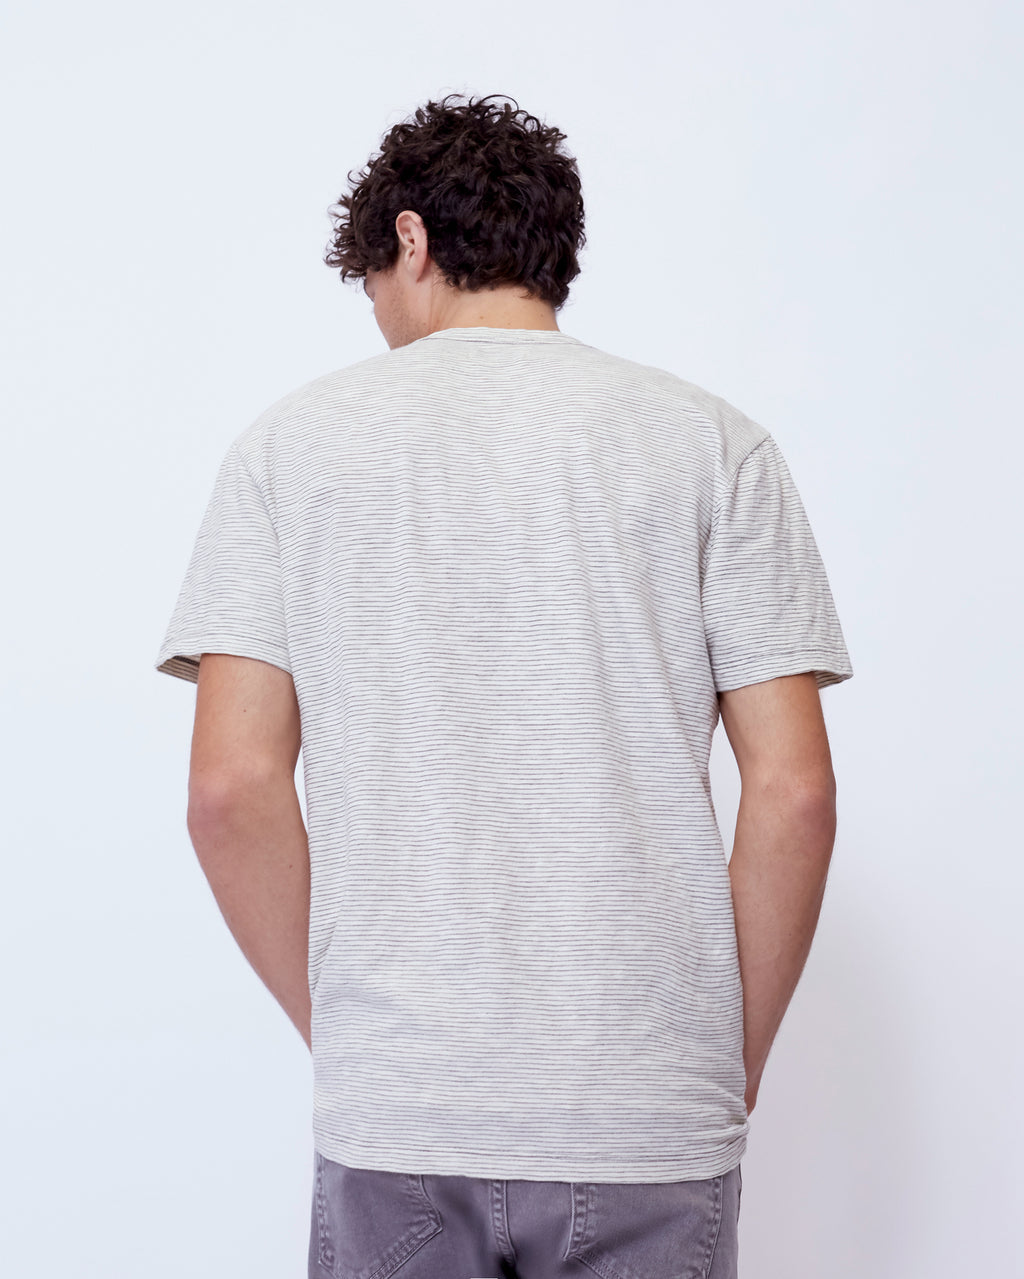 The Palma Tee in White